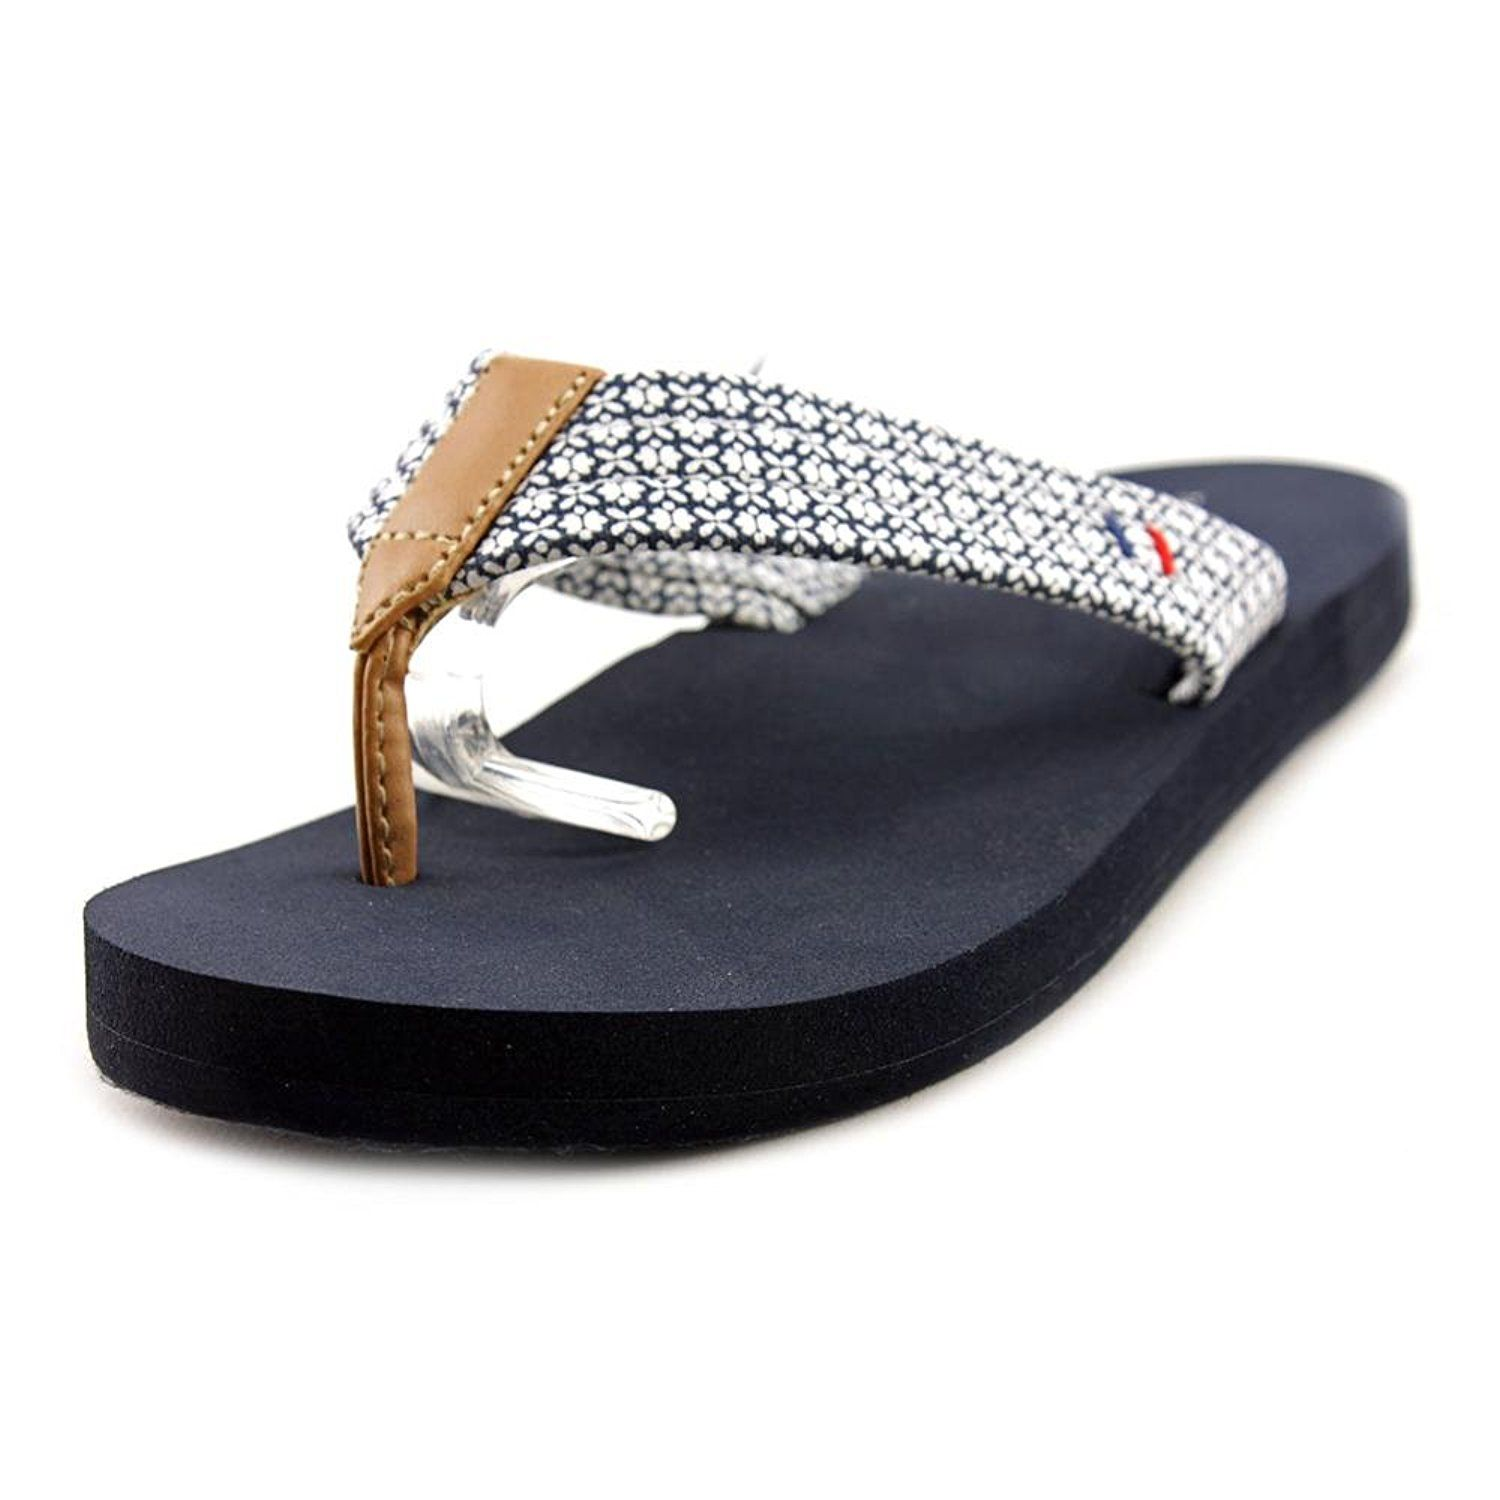 ad9309cd2 Tommy Hilfiger Womens Caber fabric Open Toe Beach Flip Flop   Review more  details here   Flip flops